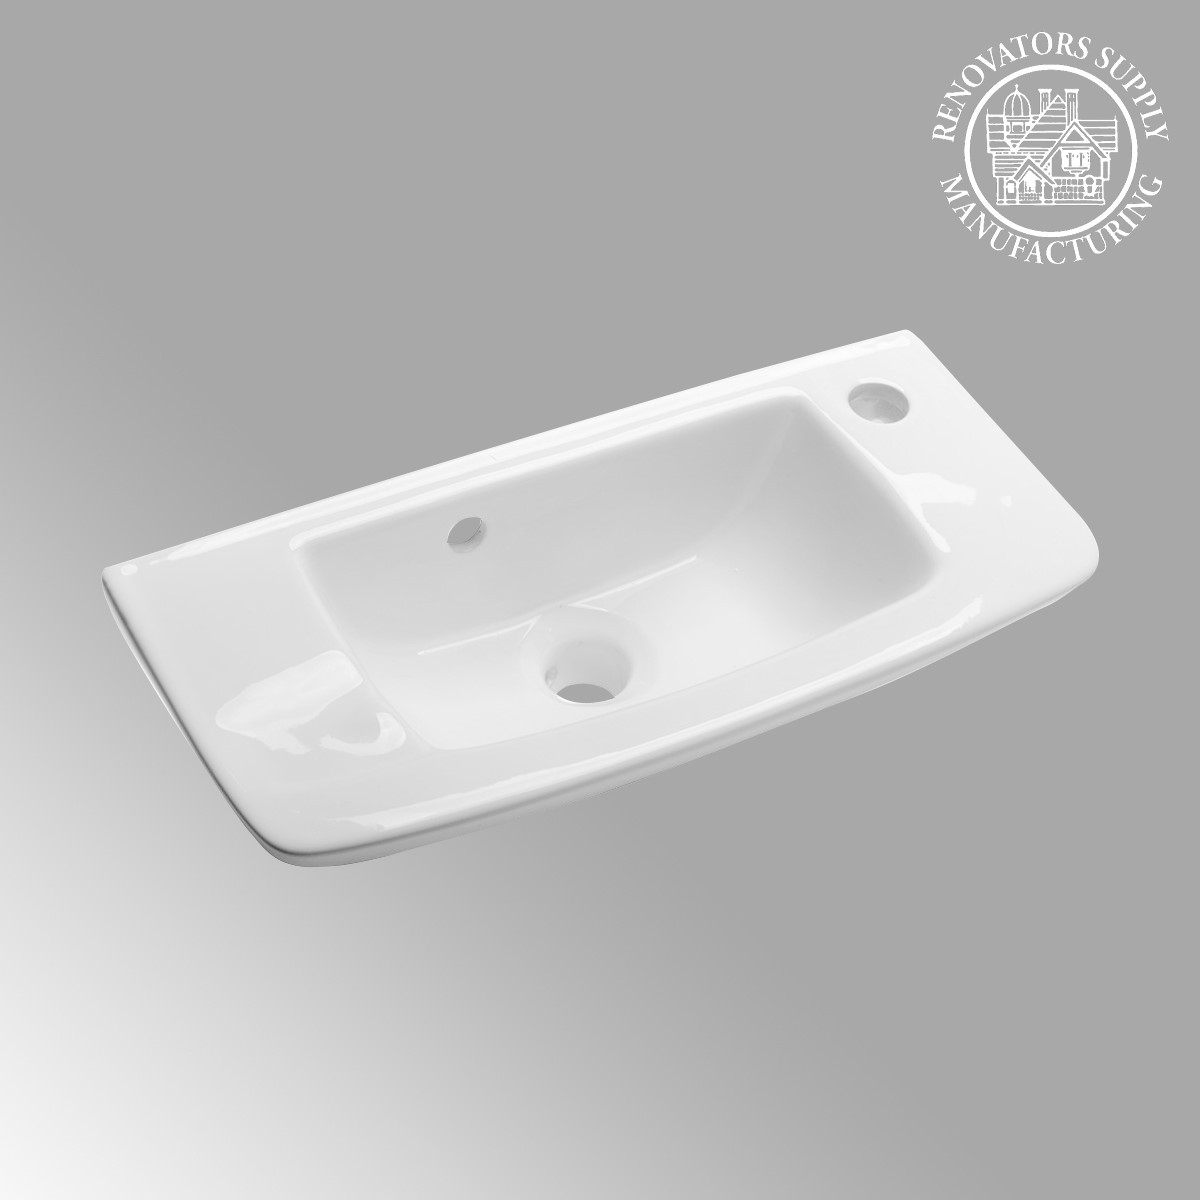 Small Bathroom Wall Mount Sink Overflow Easy Install Easy Clean Gloss Finish